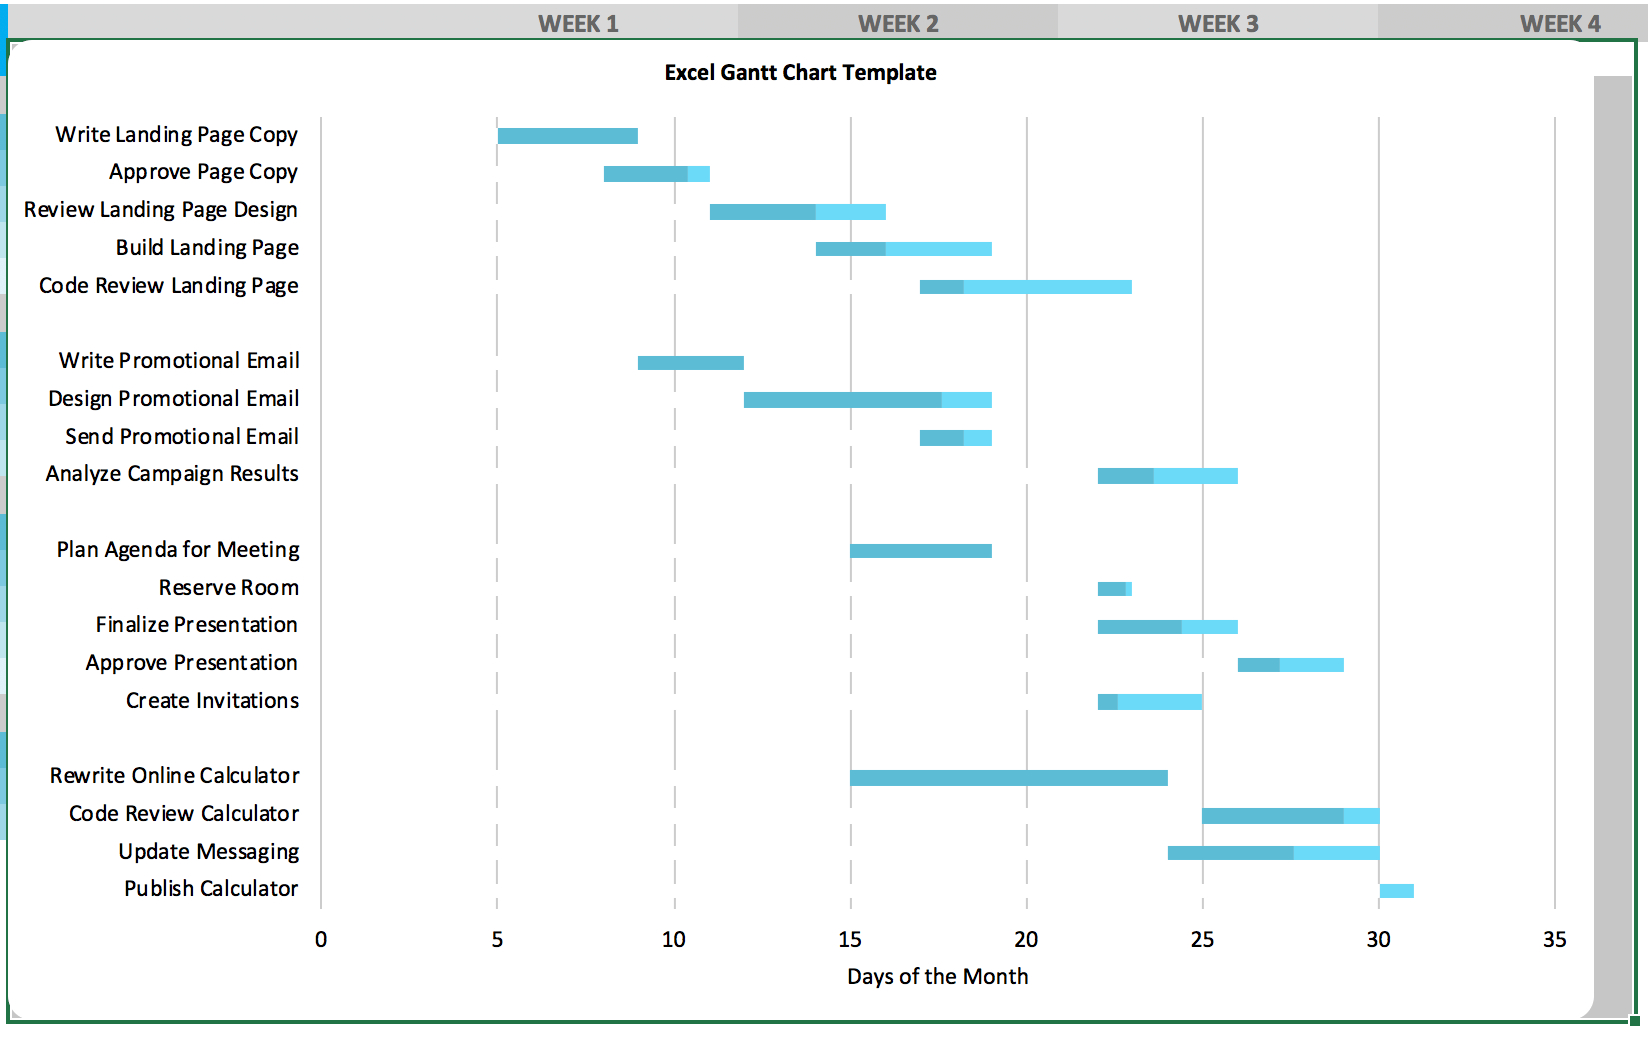 gantt chart template excel 2010 example of spreadshee